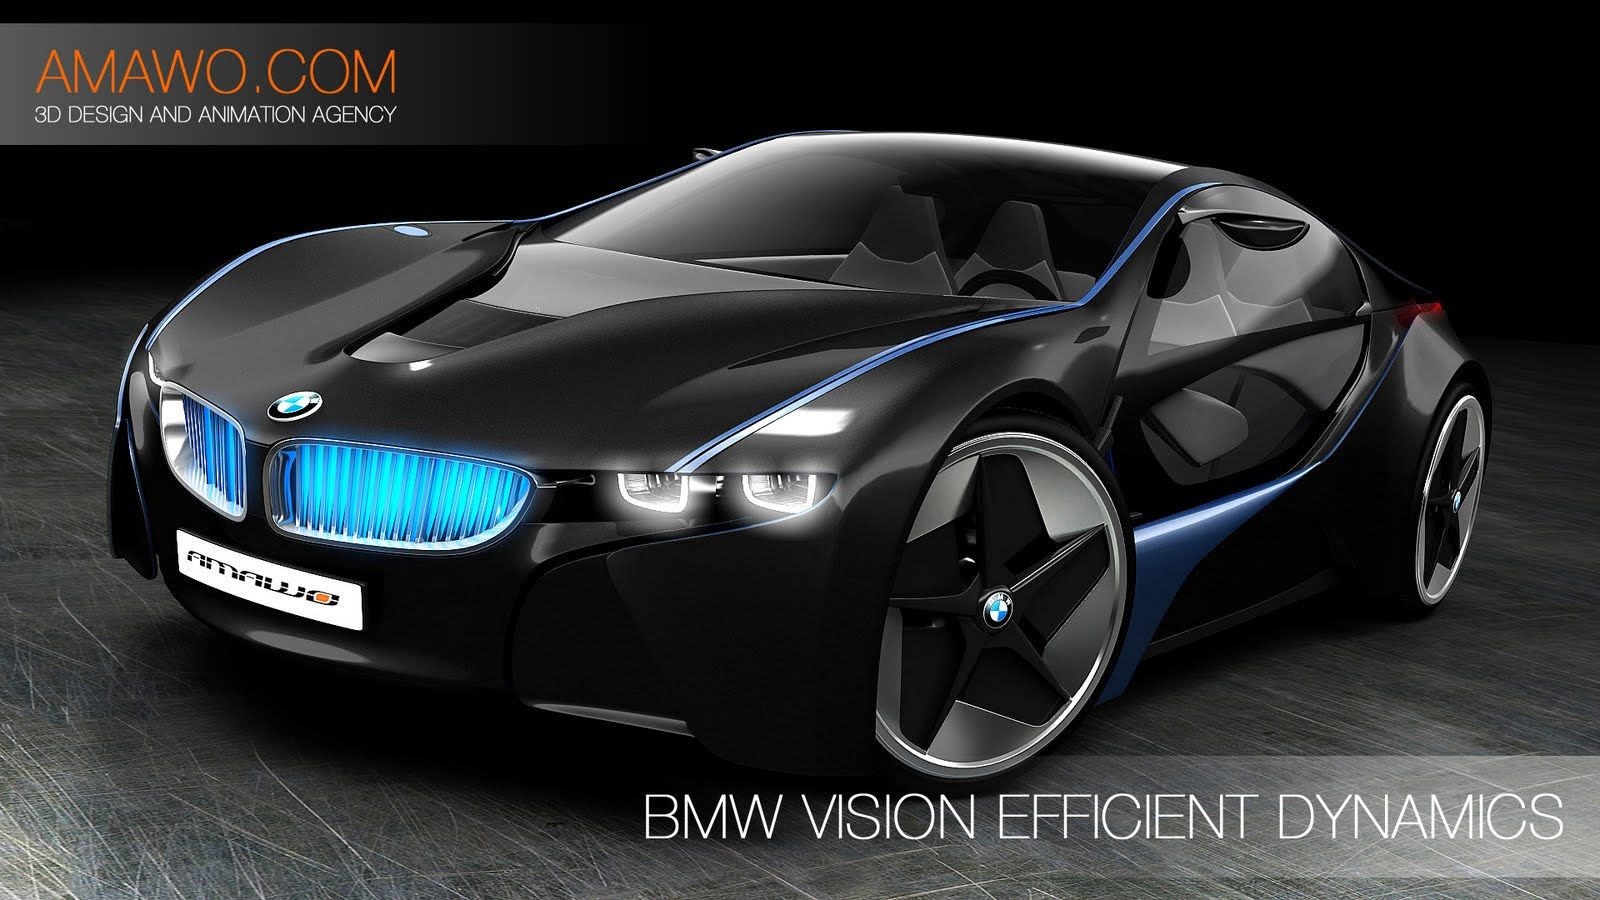 Bmw Concept Black Front I Love It Bmw New Cars Bmw Cars Vehicles